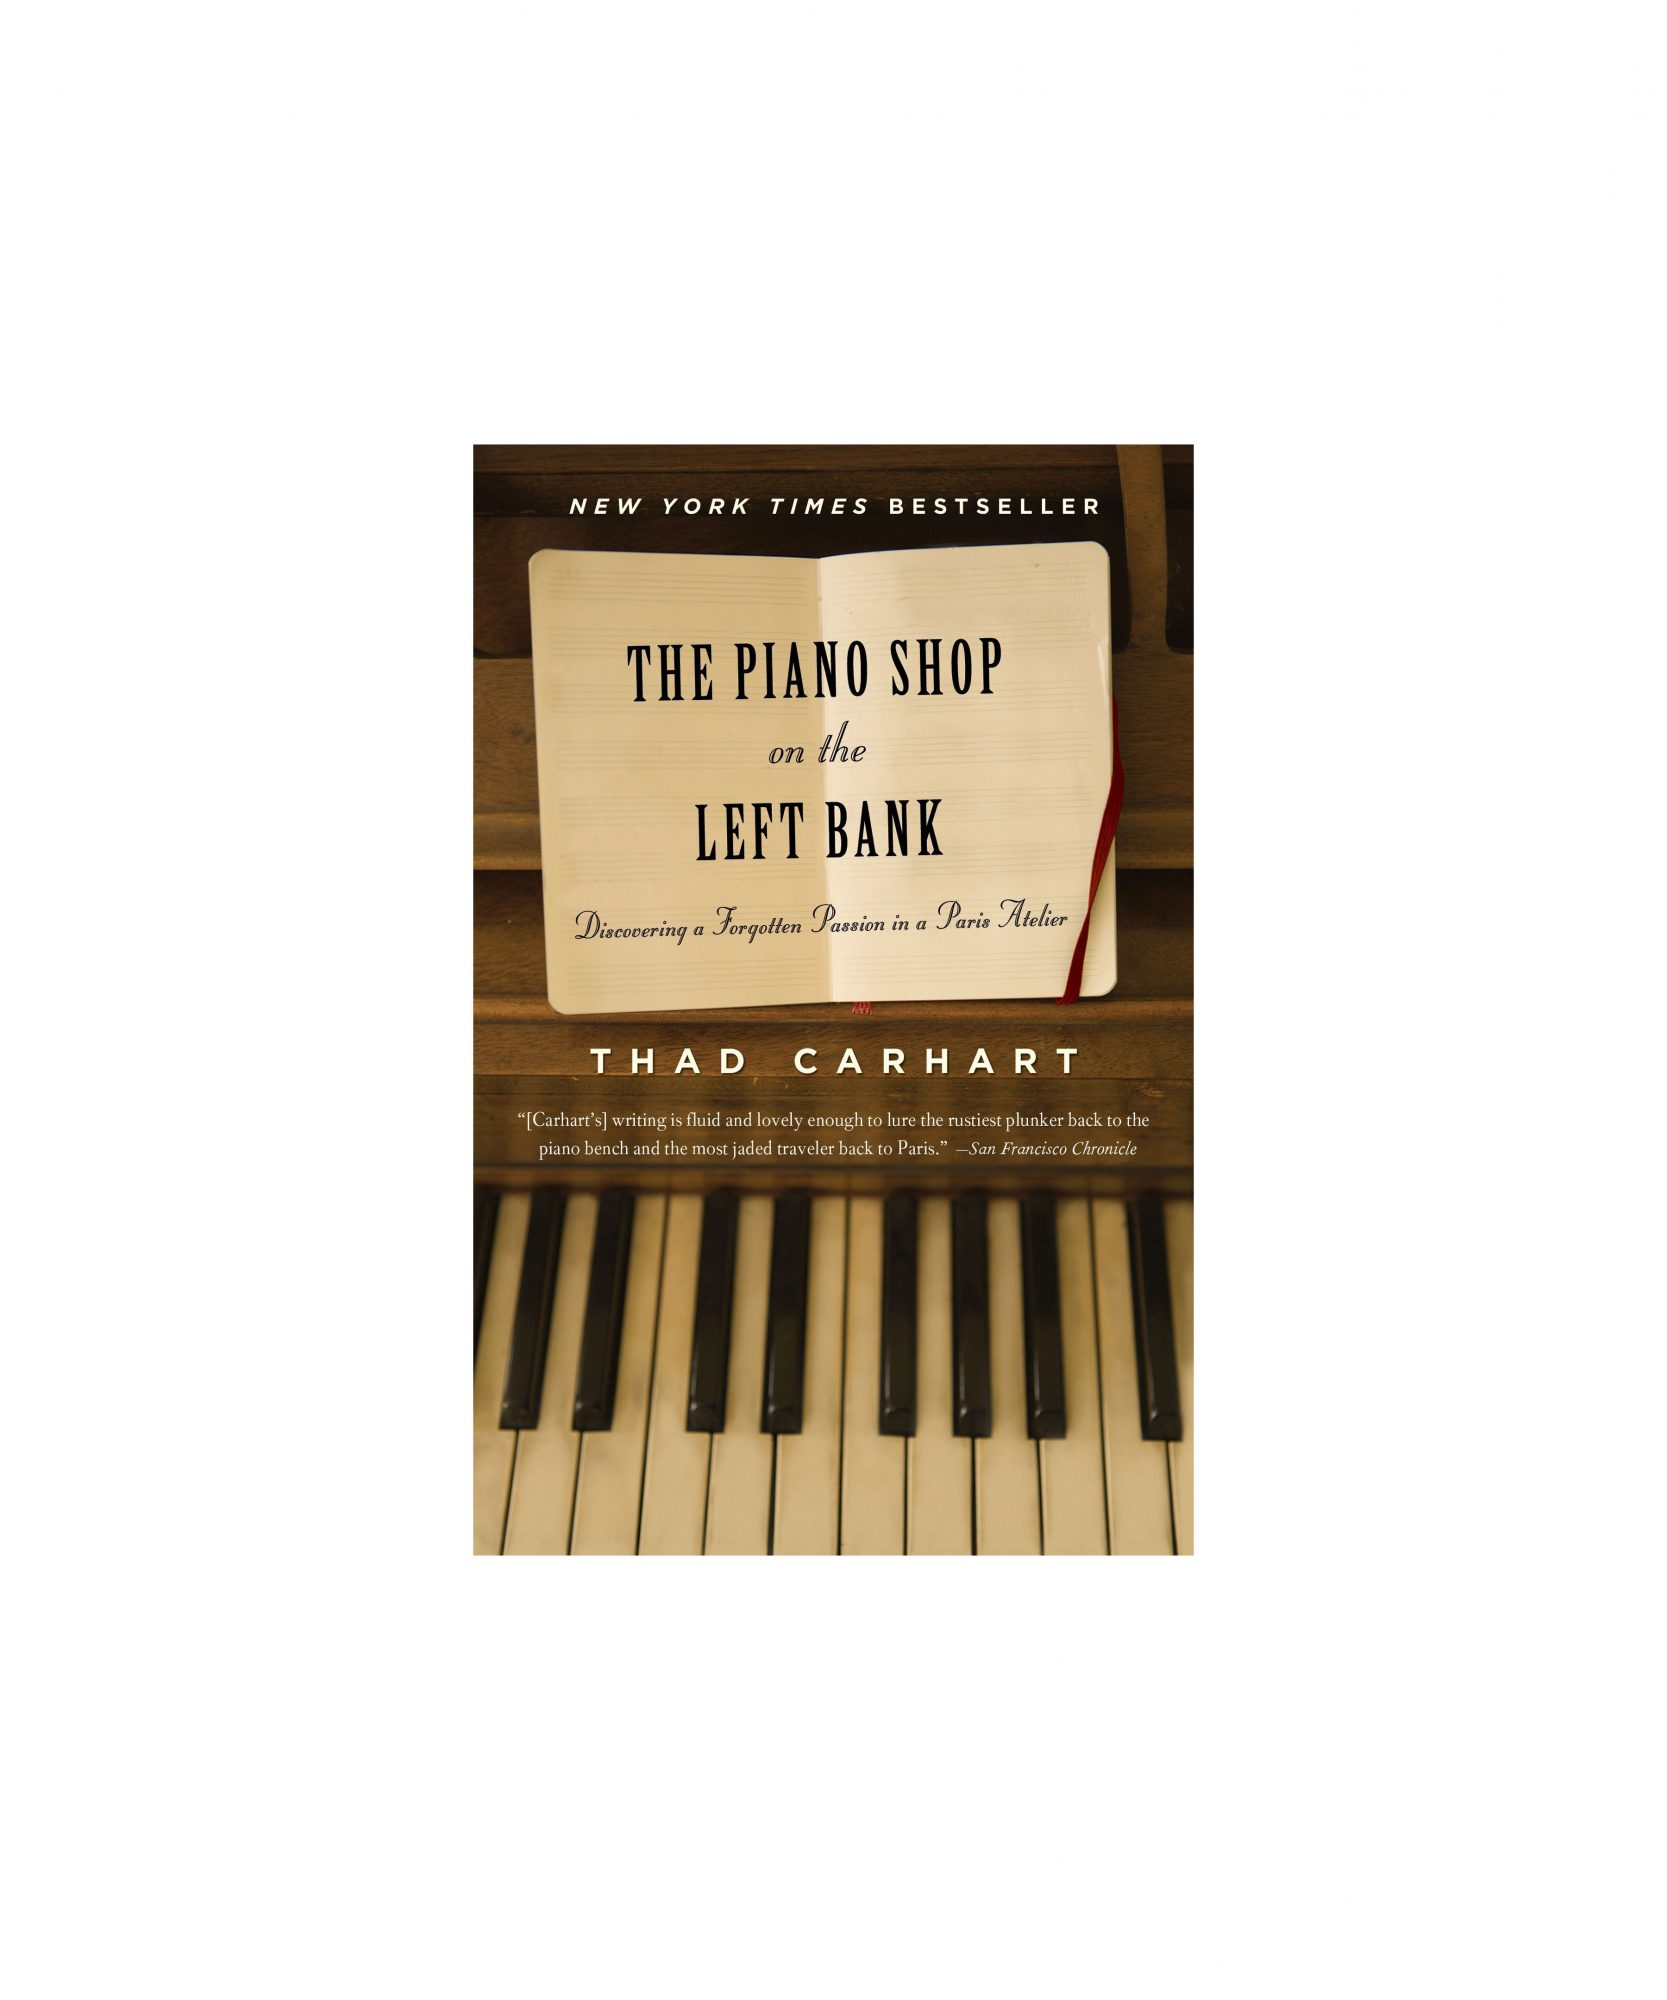 The Piano Shop on the Left Bank: Discovering a Forgotten Passion in a Paris Atelier, by Thad Carhart